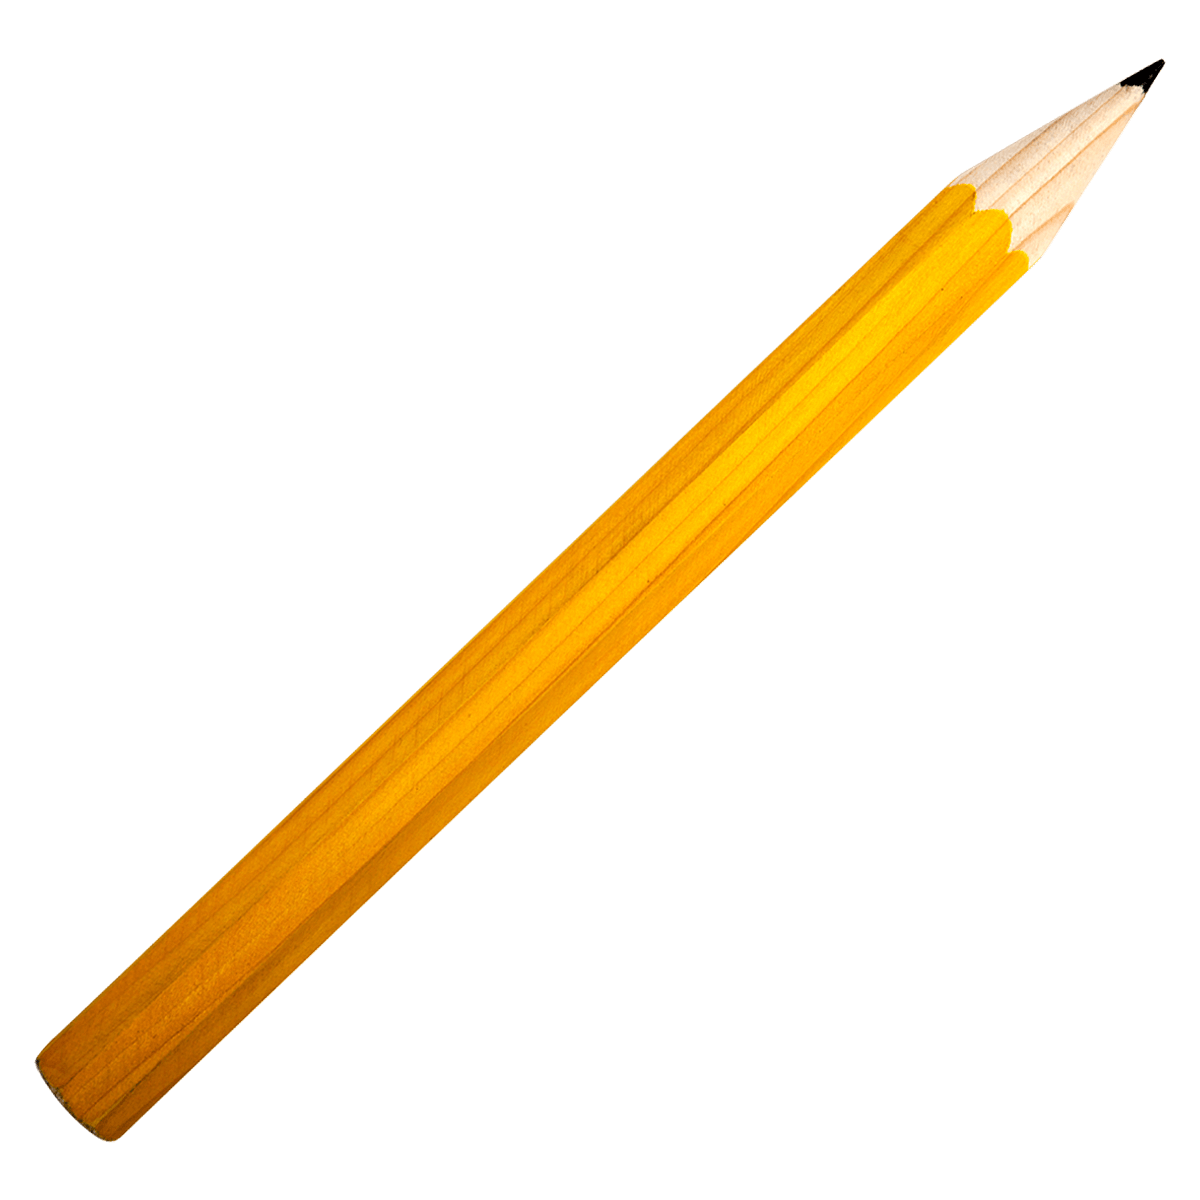 Giant Yellow Pencil